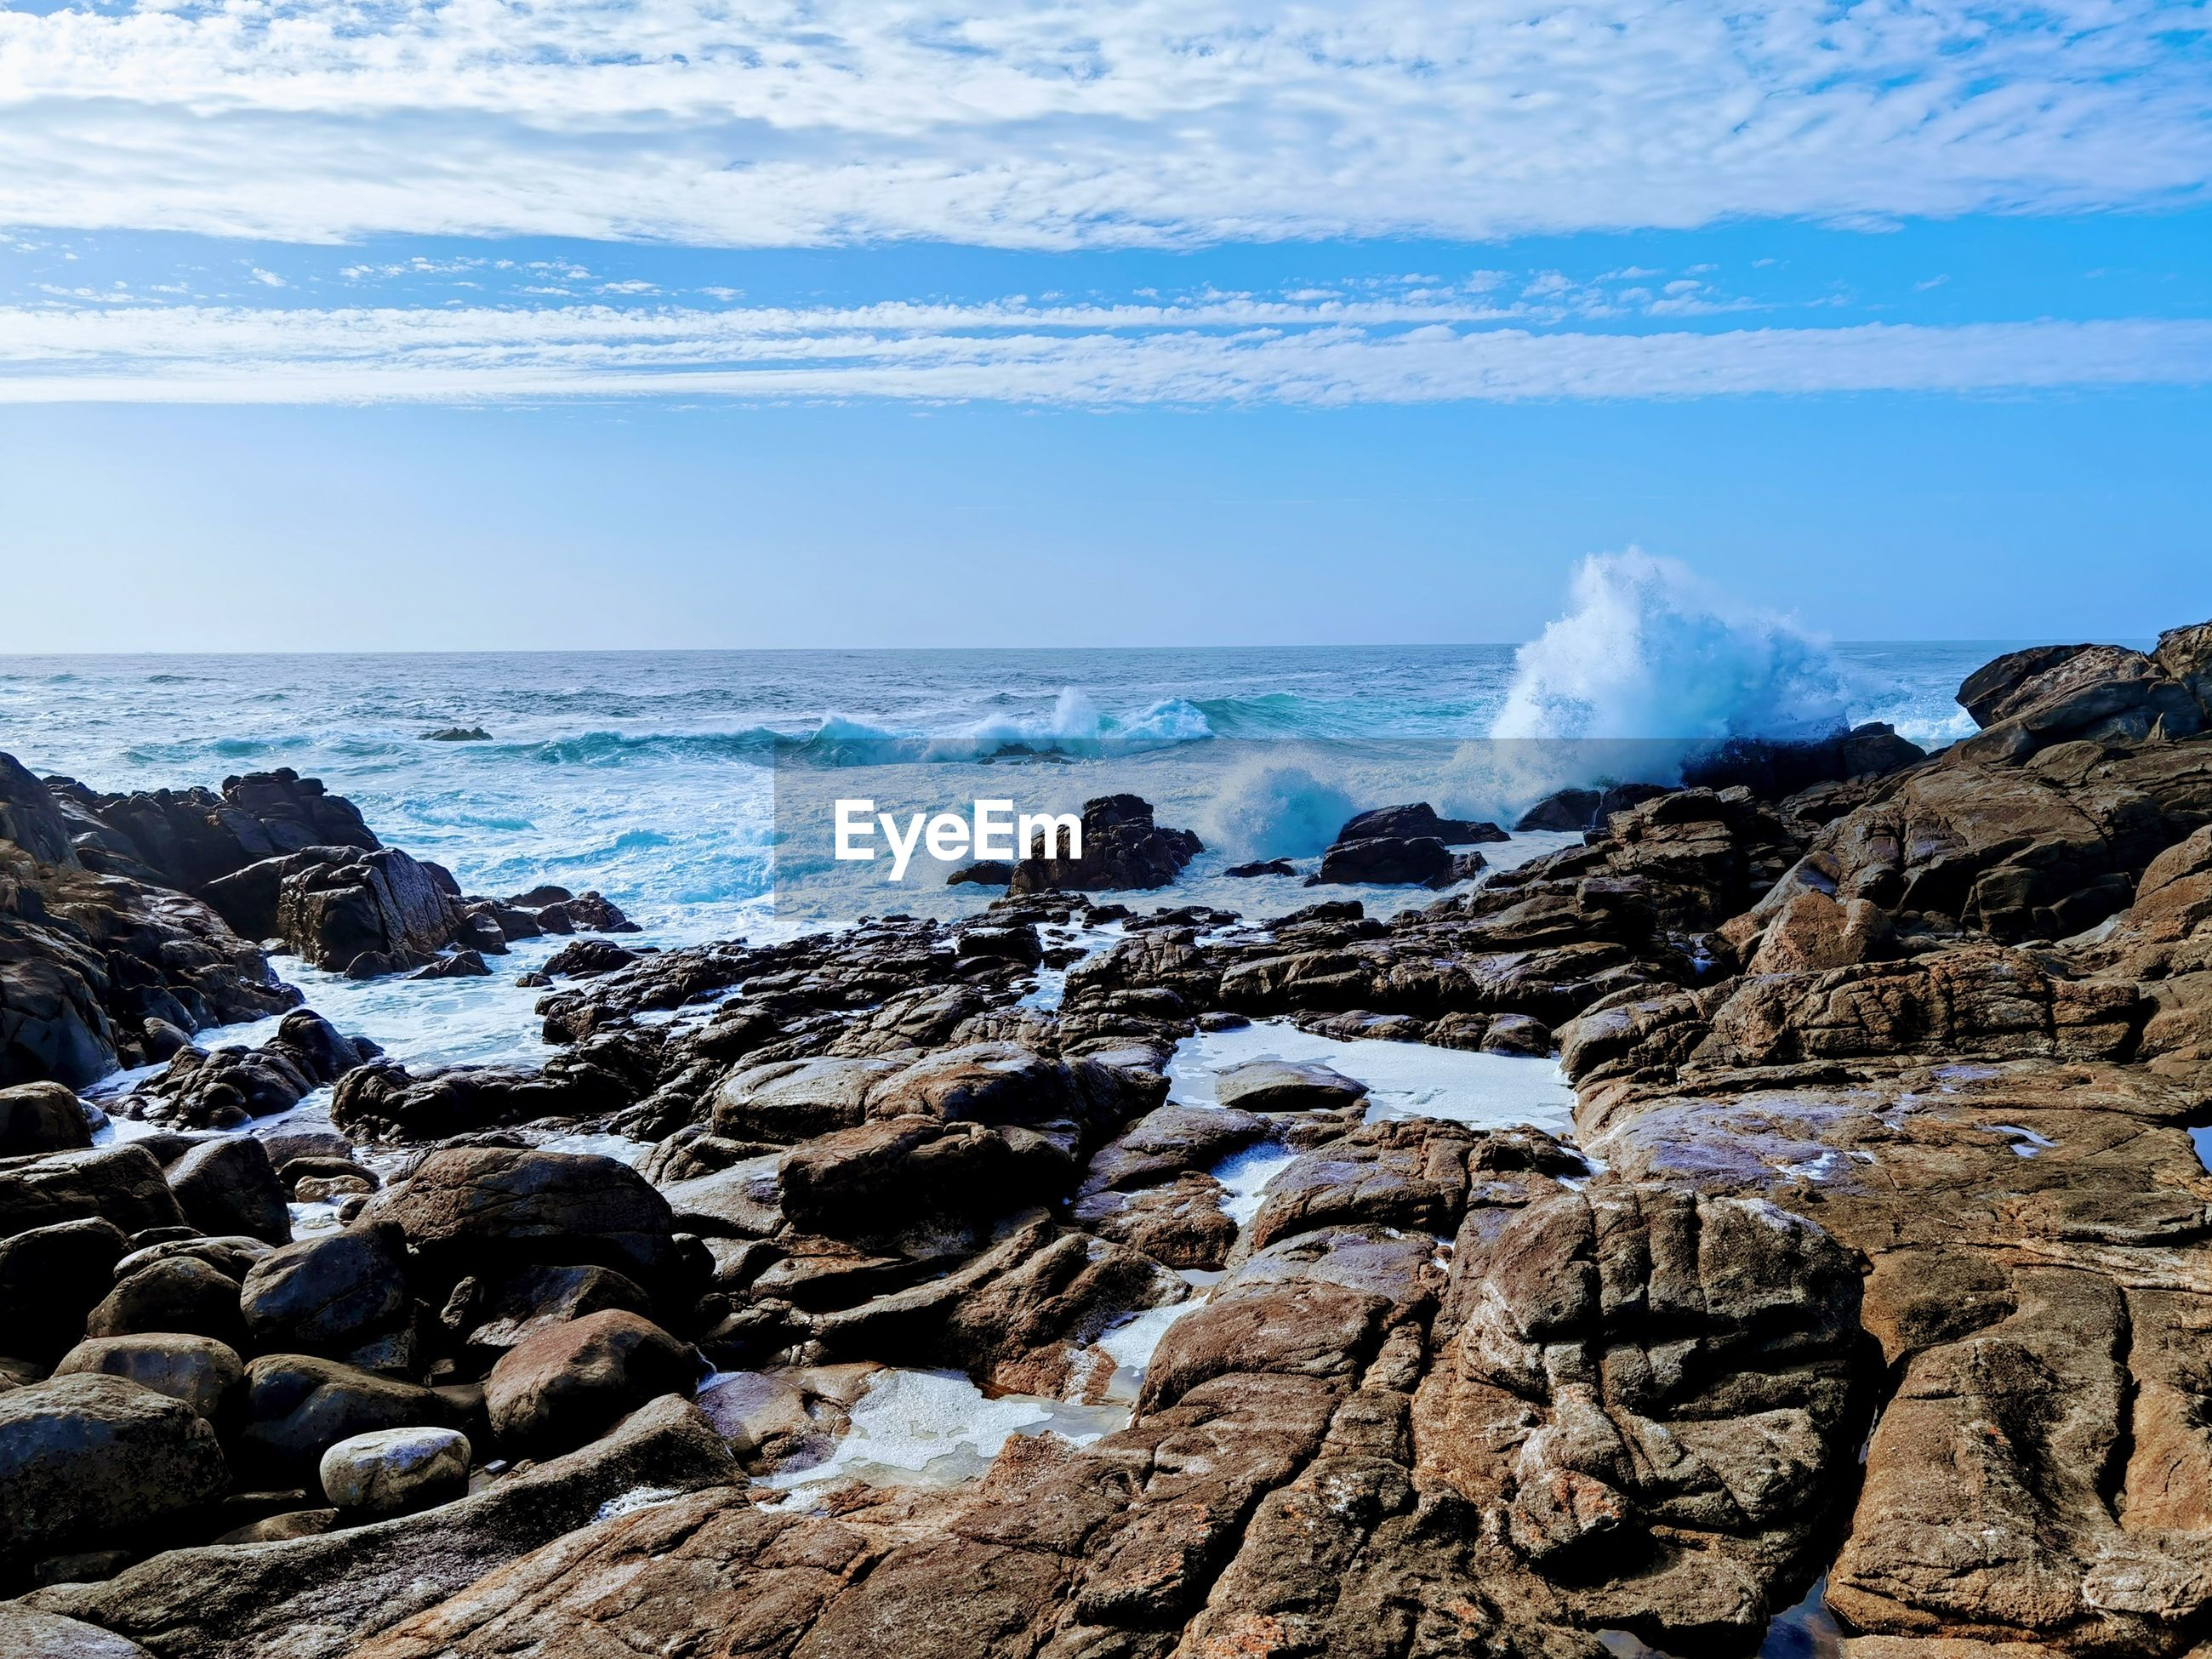 SCENIC VIEW OF SEA AGAINST ROCKS